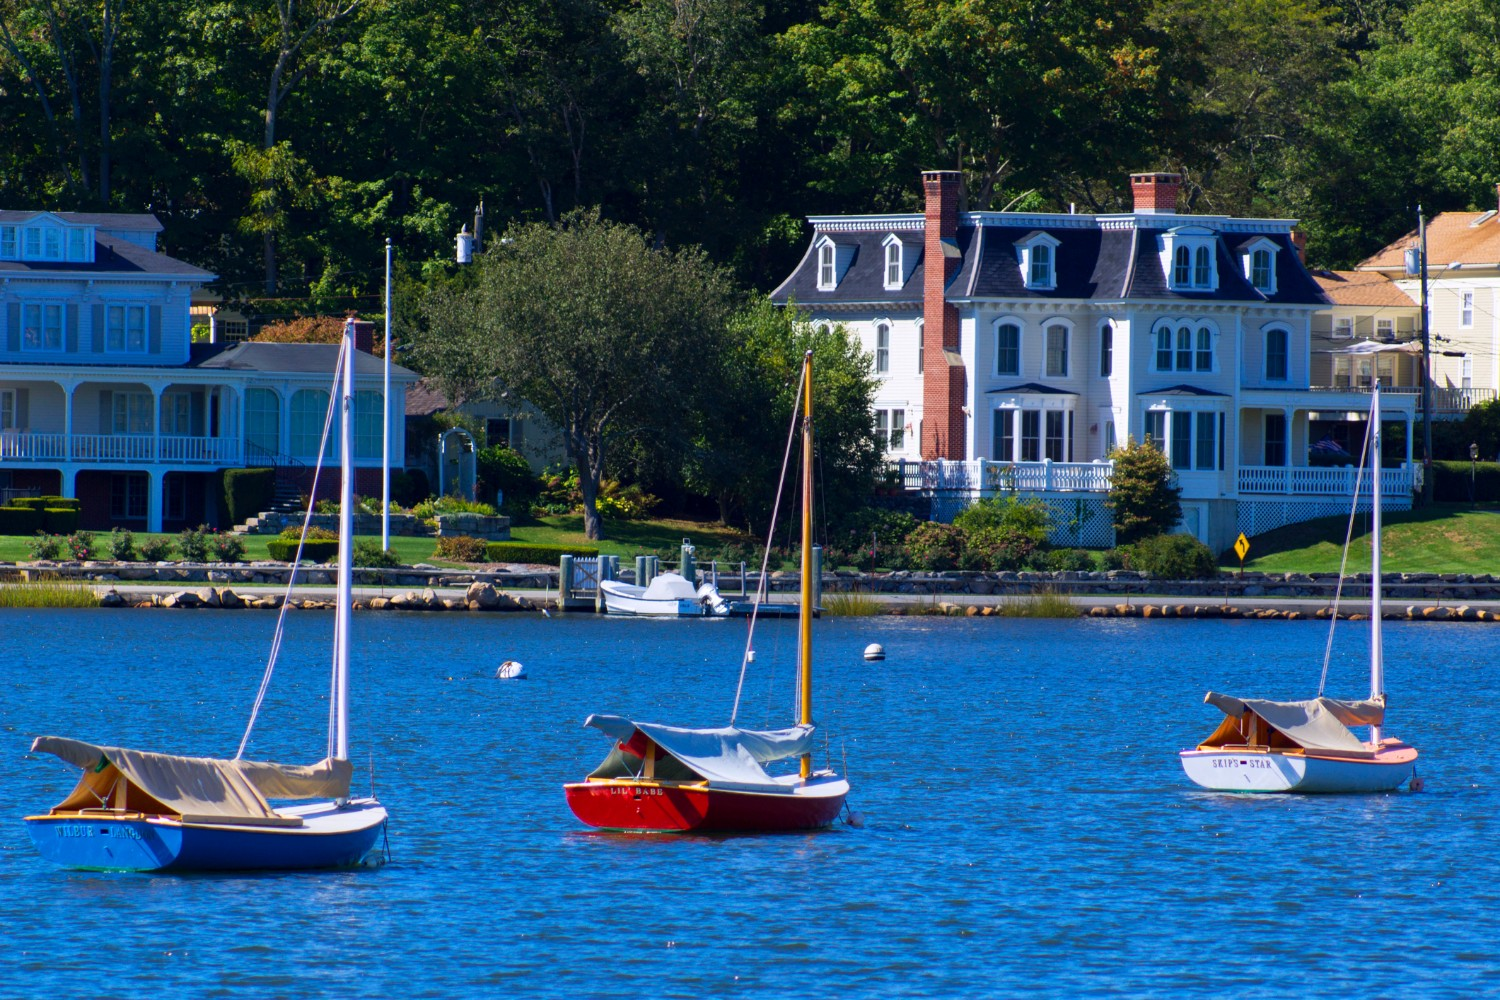 View from the water of Stonington, CT - Things to do in Stonington, CT